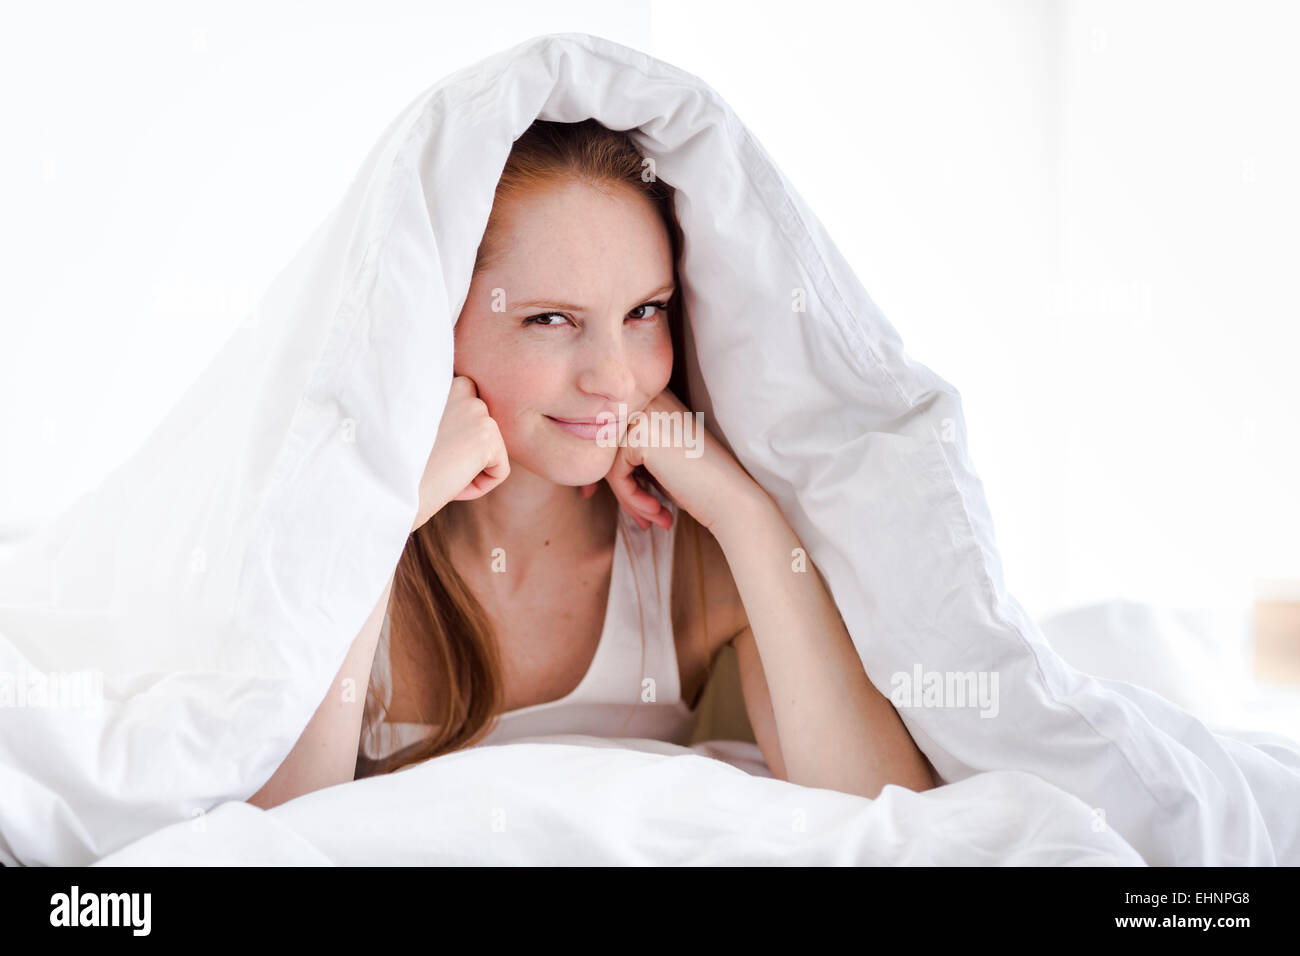 Woman sitting on bed. - Stock Image